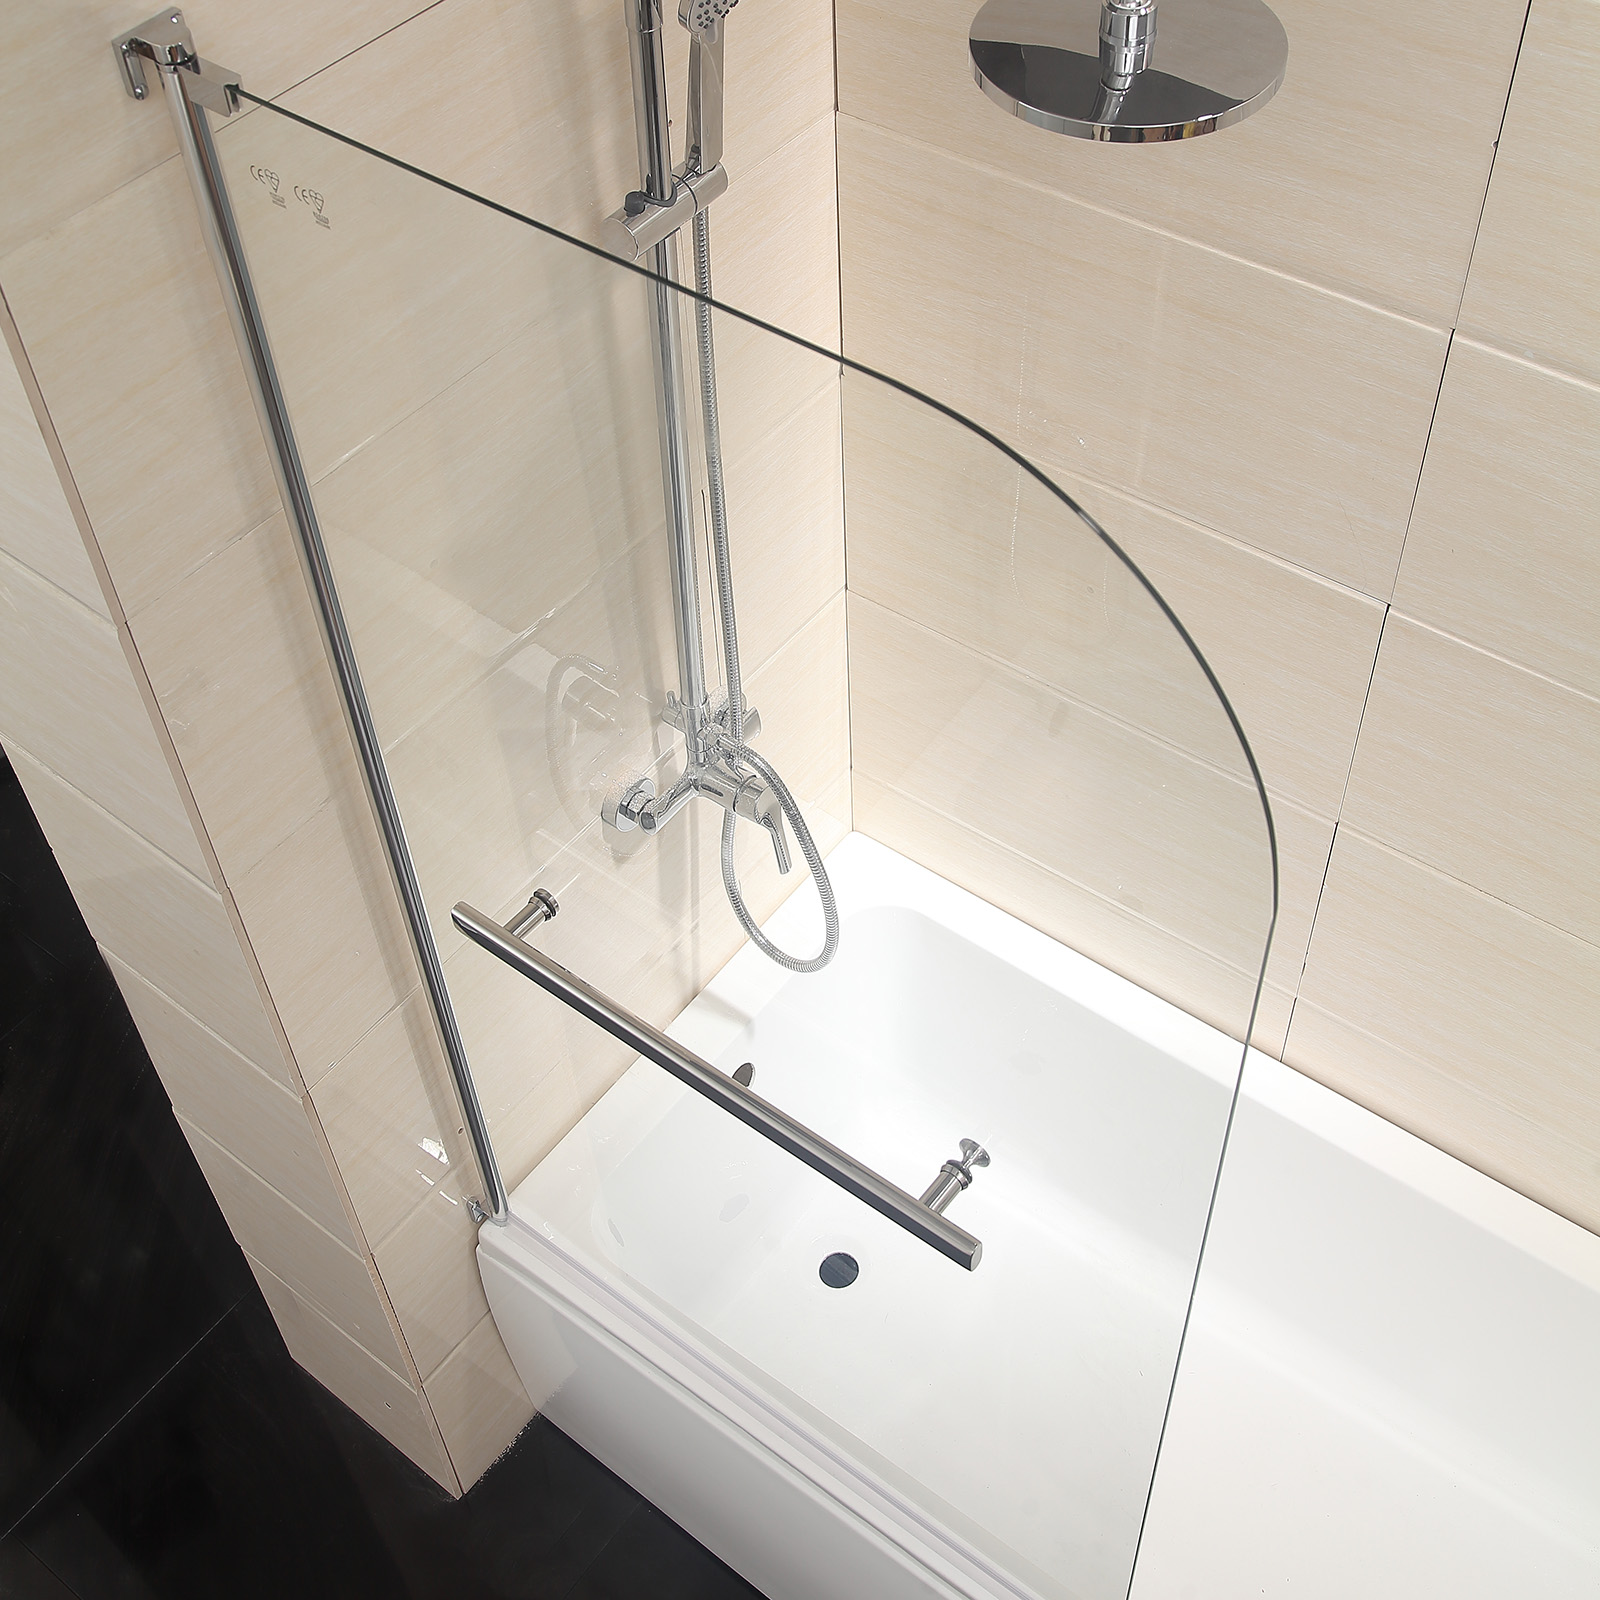 800x1400mm 180 pivot shower screen bath door panel radius 800x1400mm 180 pivot shower screen bath door panel